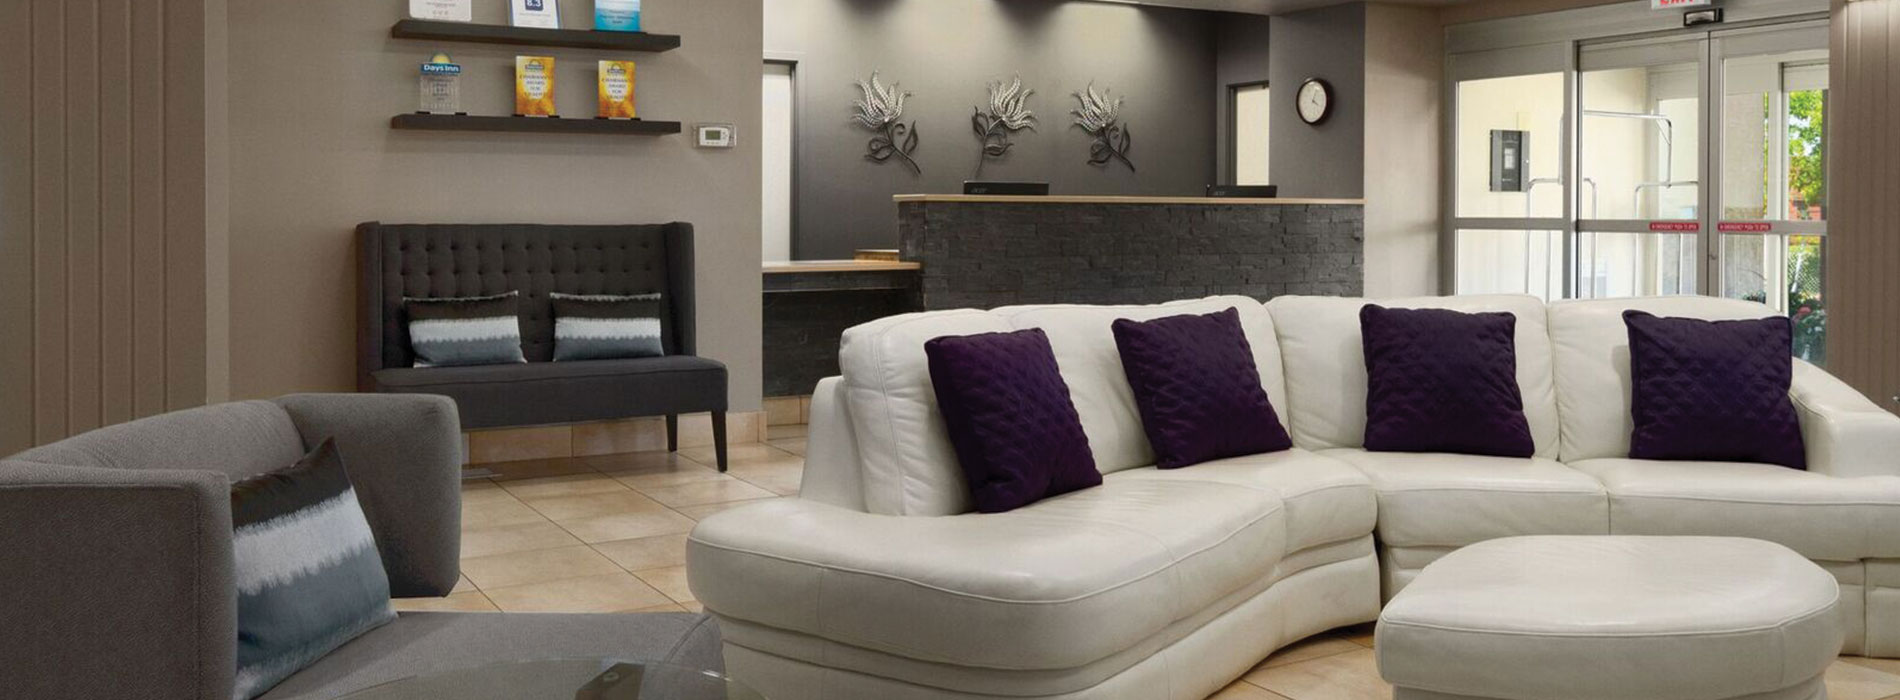 The lobby in d3h Days Inn Edmonton South is a welcoming space with comfortable seating:  a plush white sectional sofa with matching ottoman, a gray single seat armchair and charcoal gray loveseat placed next to the stone check-in counter.  Three silver and black metallic tulip wall ornaments are mounted against the cloudy concrete gray walls behind the check-in desk.